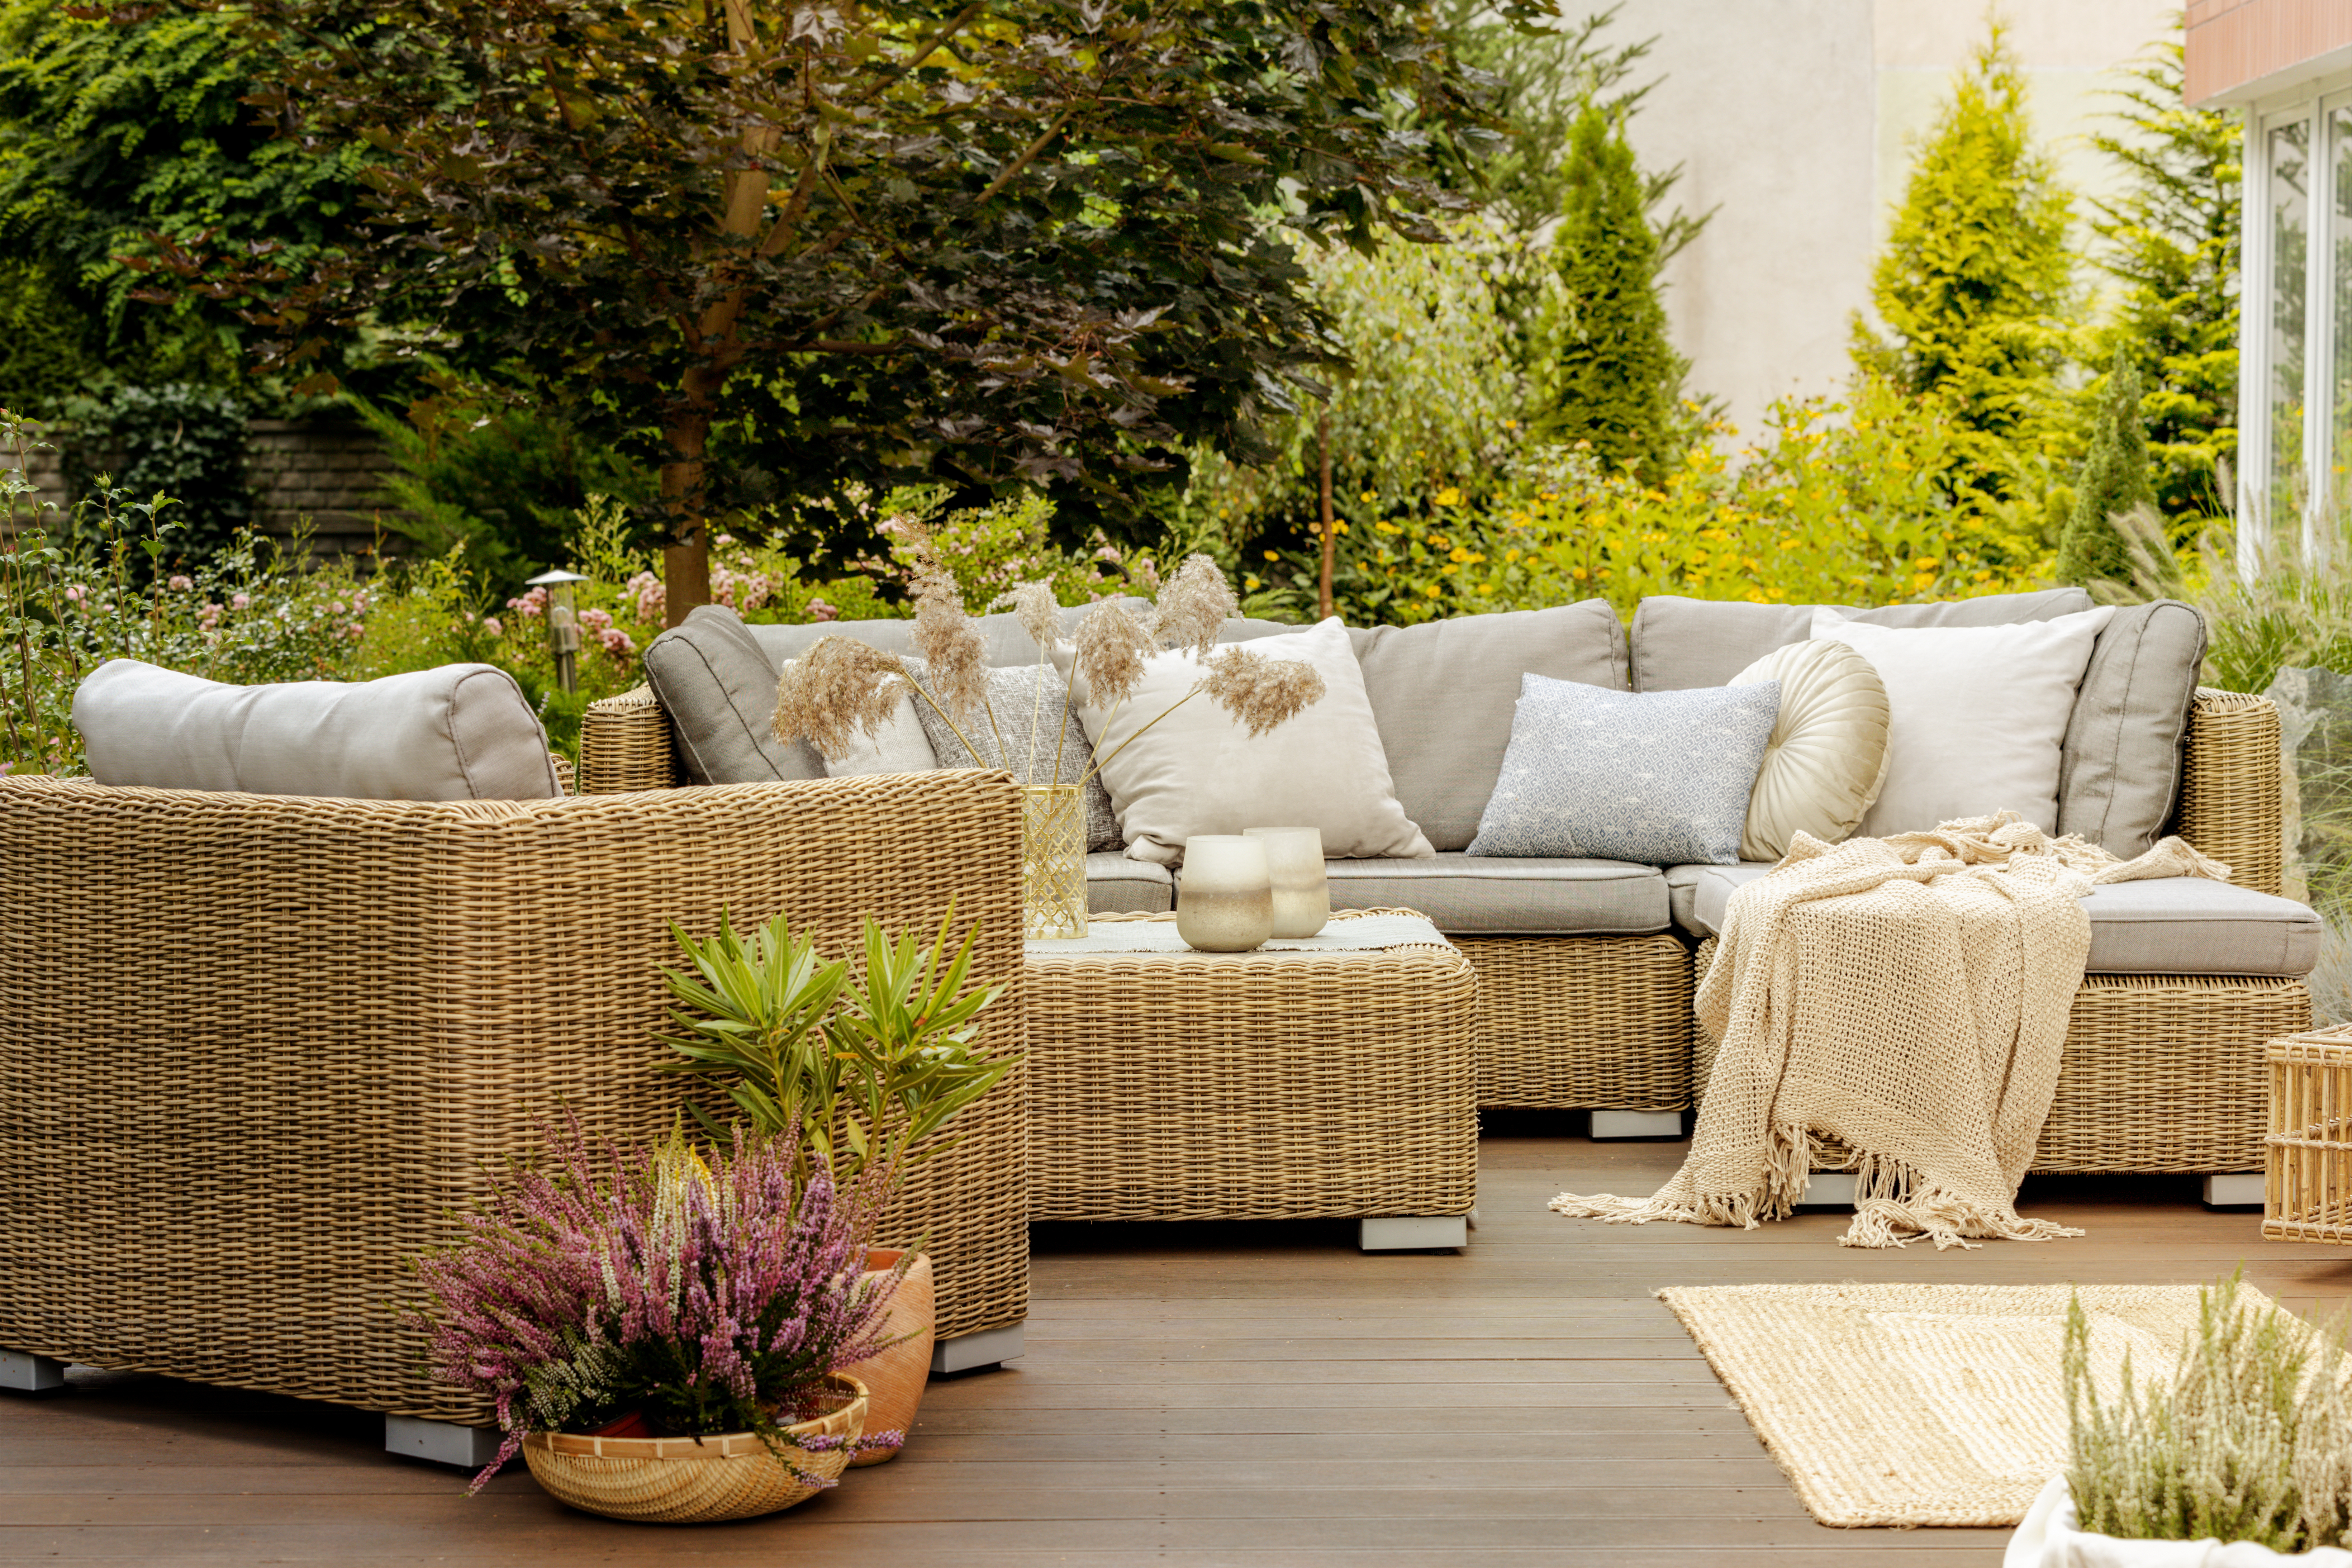 Wicker furniture on a wooden terrace of